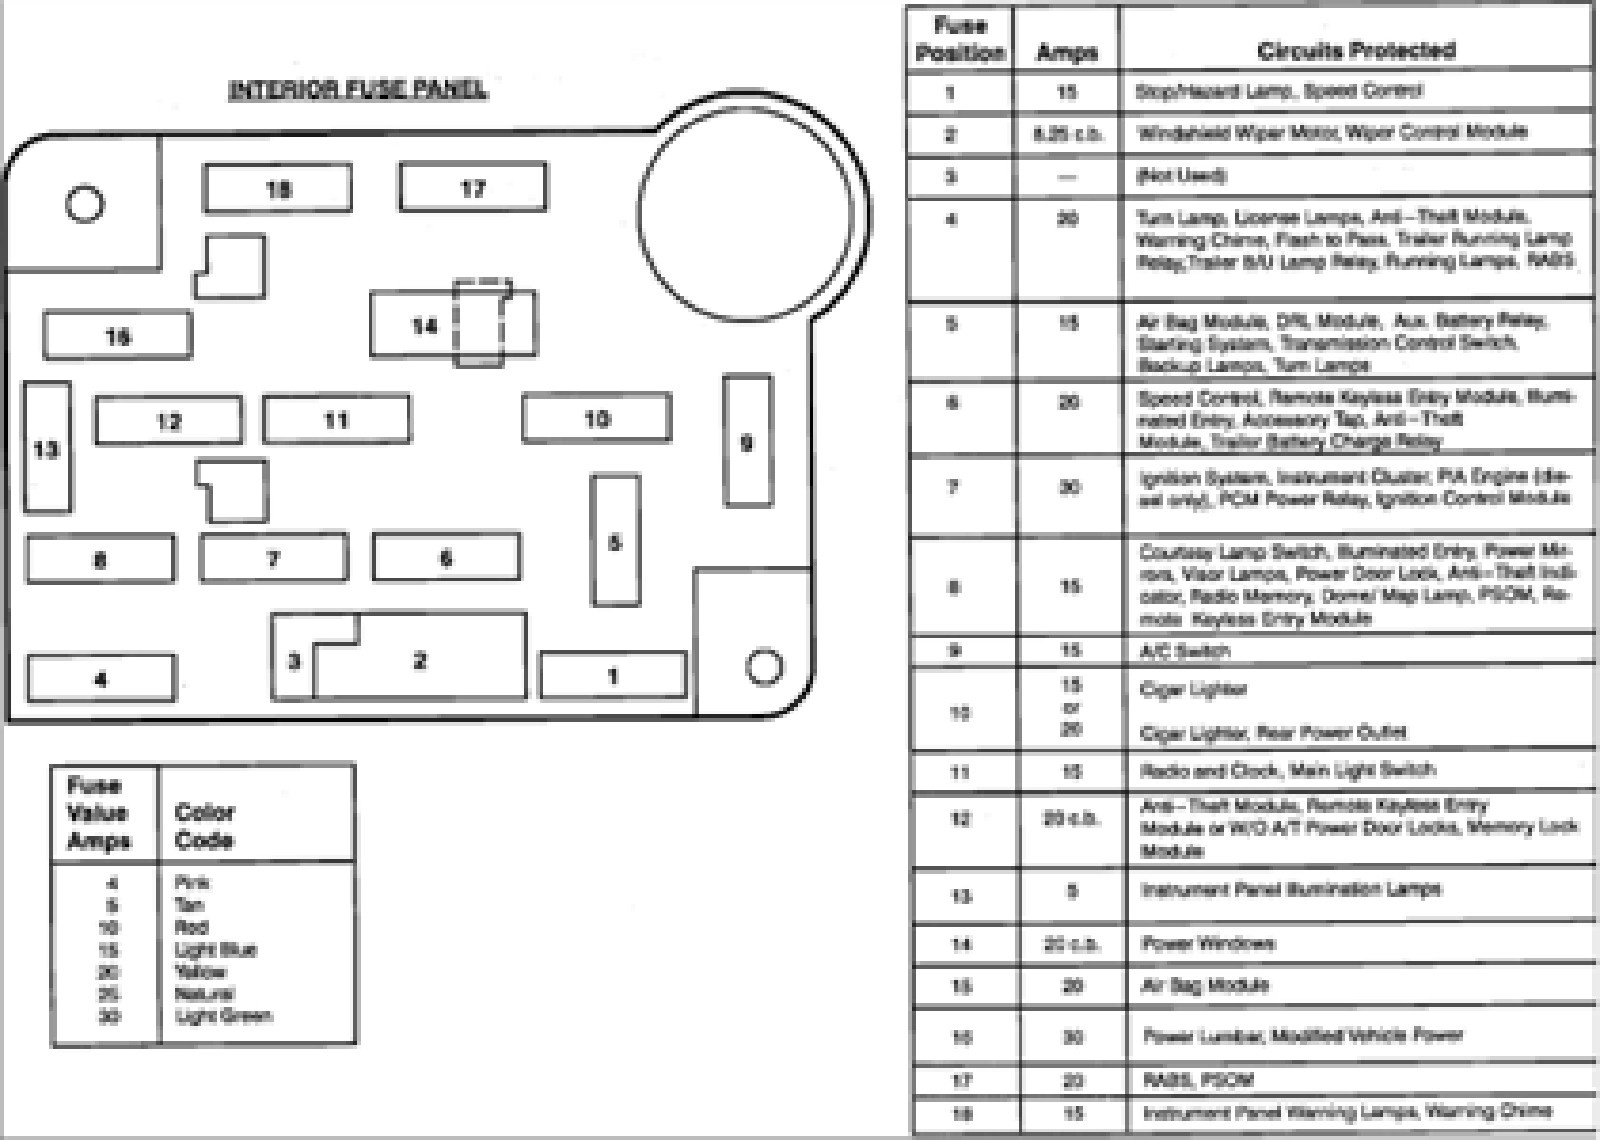 Ford E 150 Questions Fuse Diagram For A 1993 Ford Econoline Van 2006 Ford  Explorer Fuse Box Diagram Ford Fuse Box Diagram